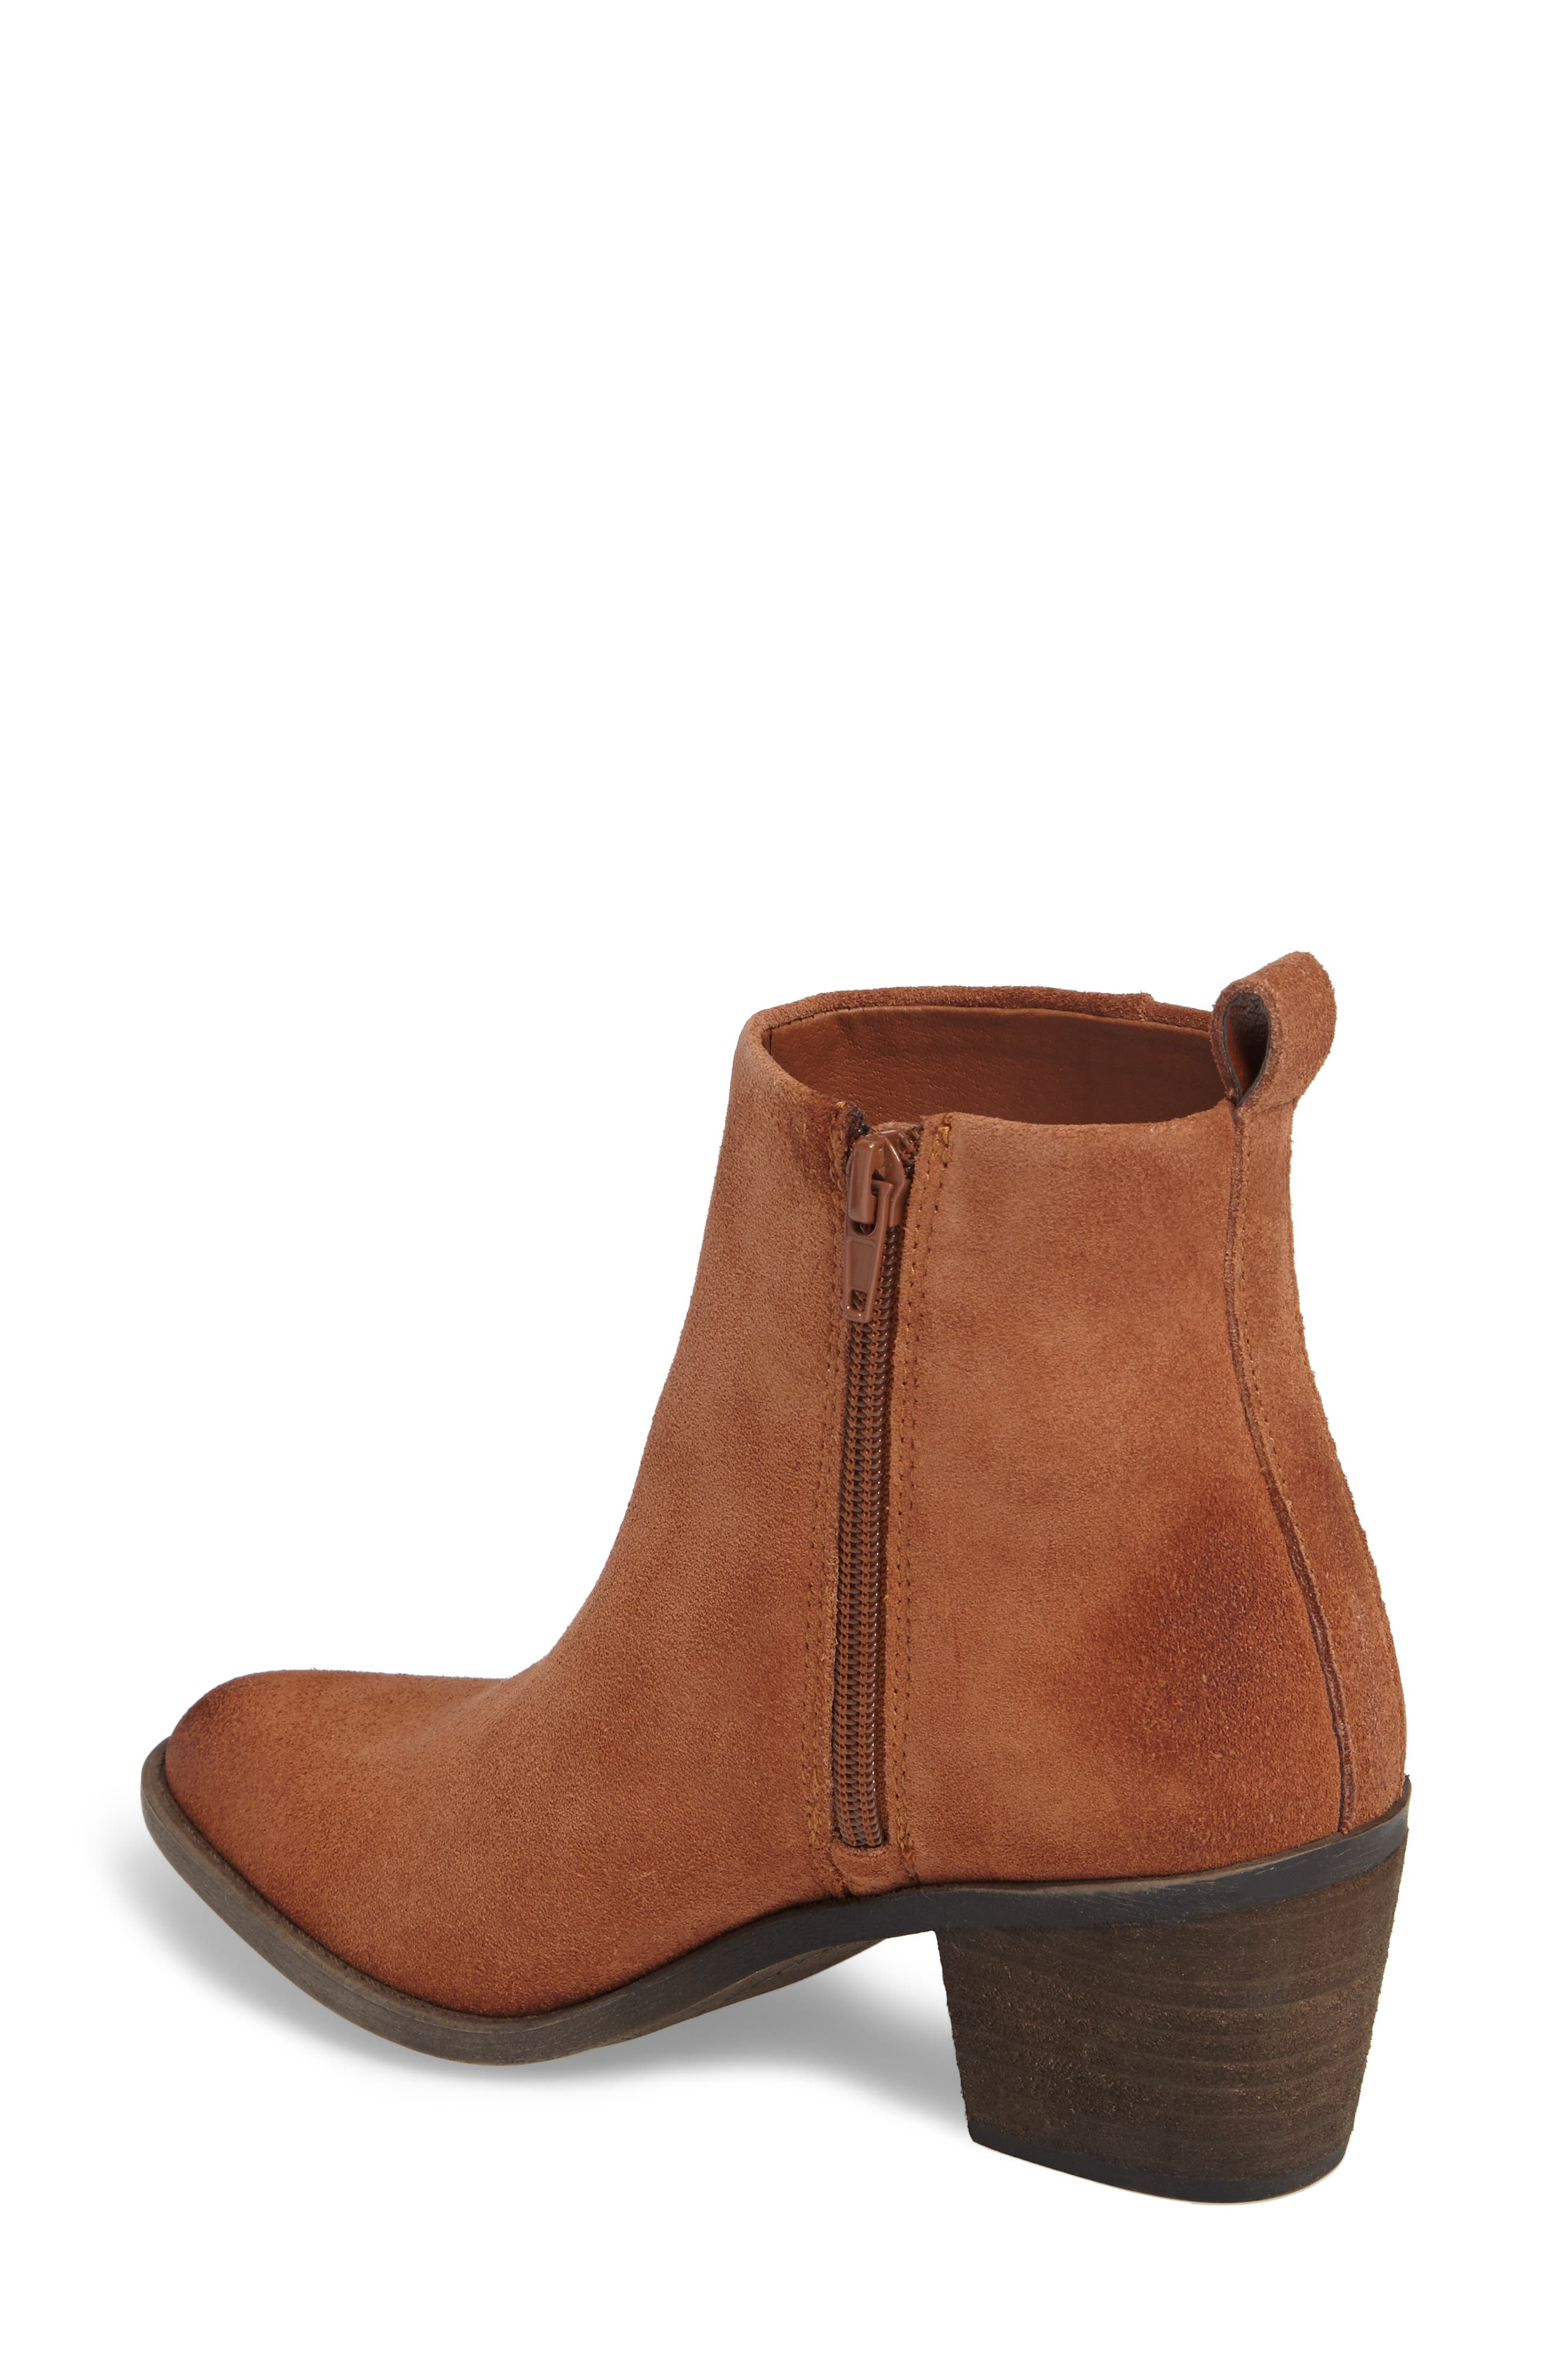 Natania Bootie,                             Alternate thumbnail 2, color,                             Toffee Suede